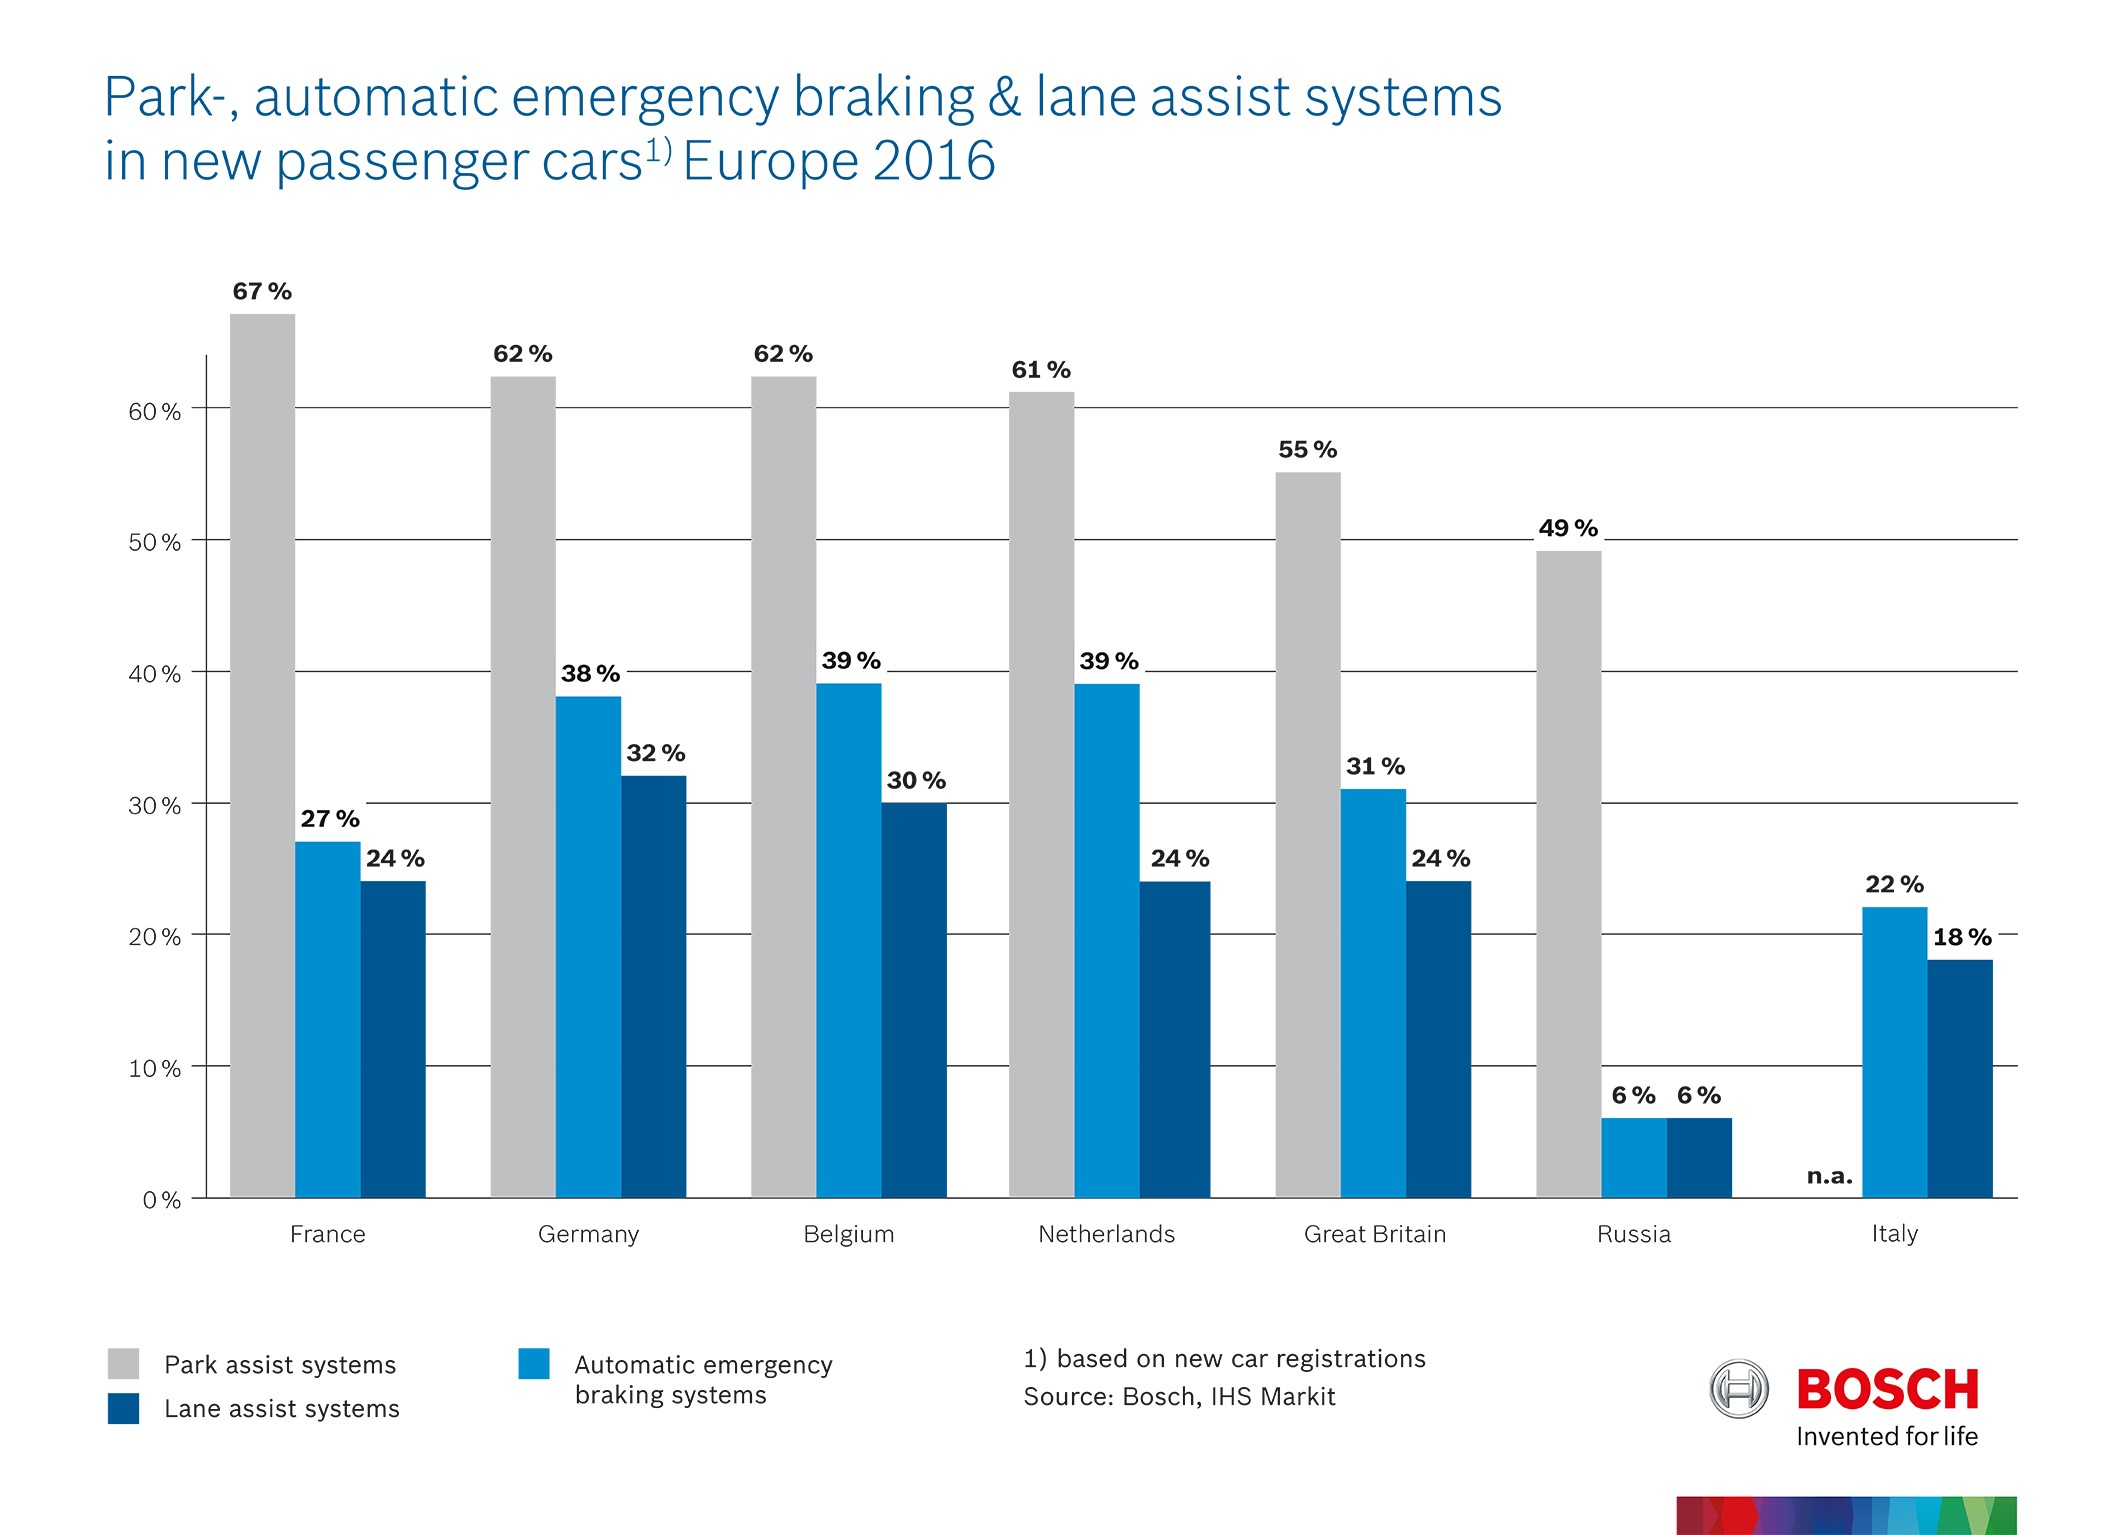 Bosch analysis: driver assistance systems continue their strong advance